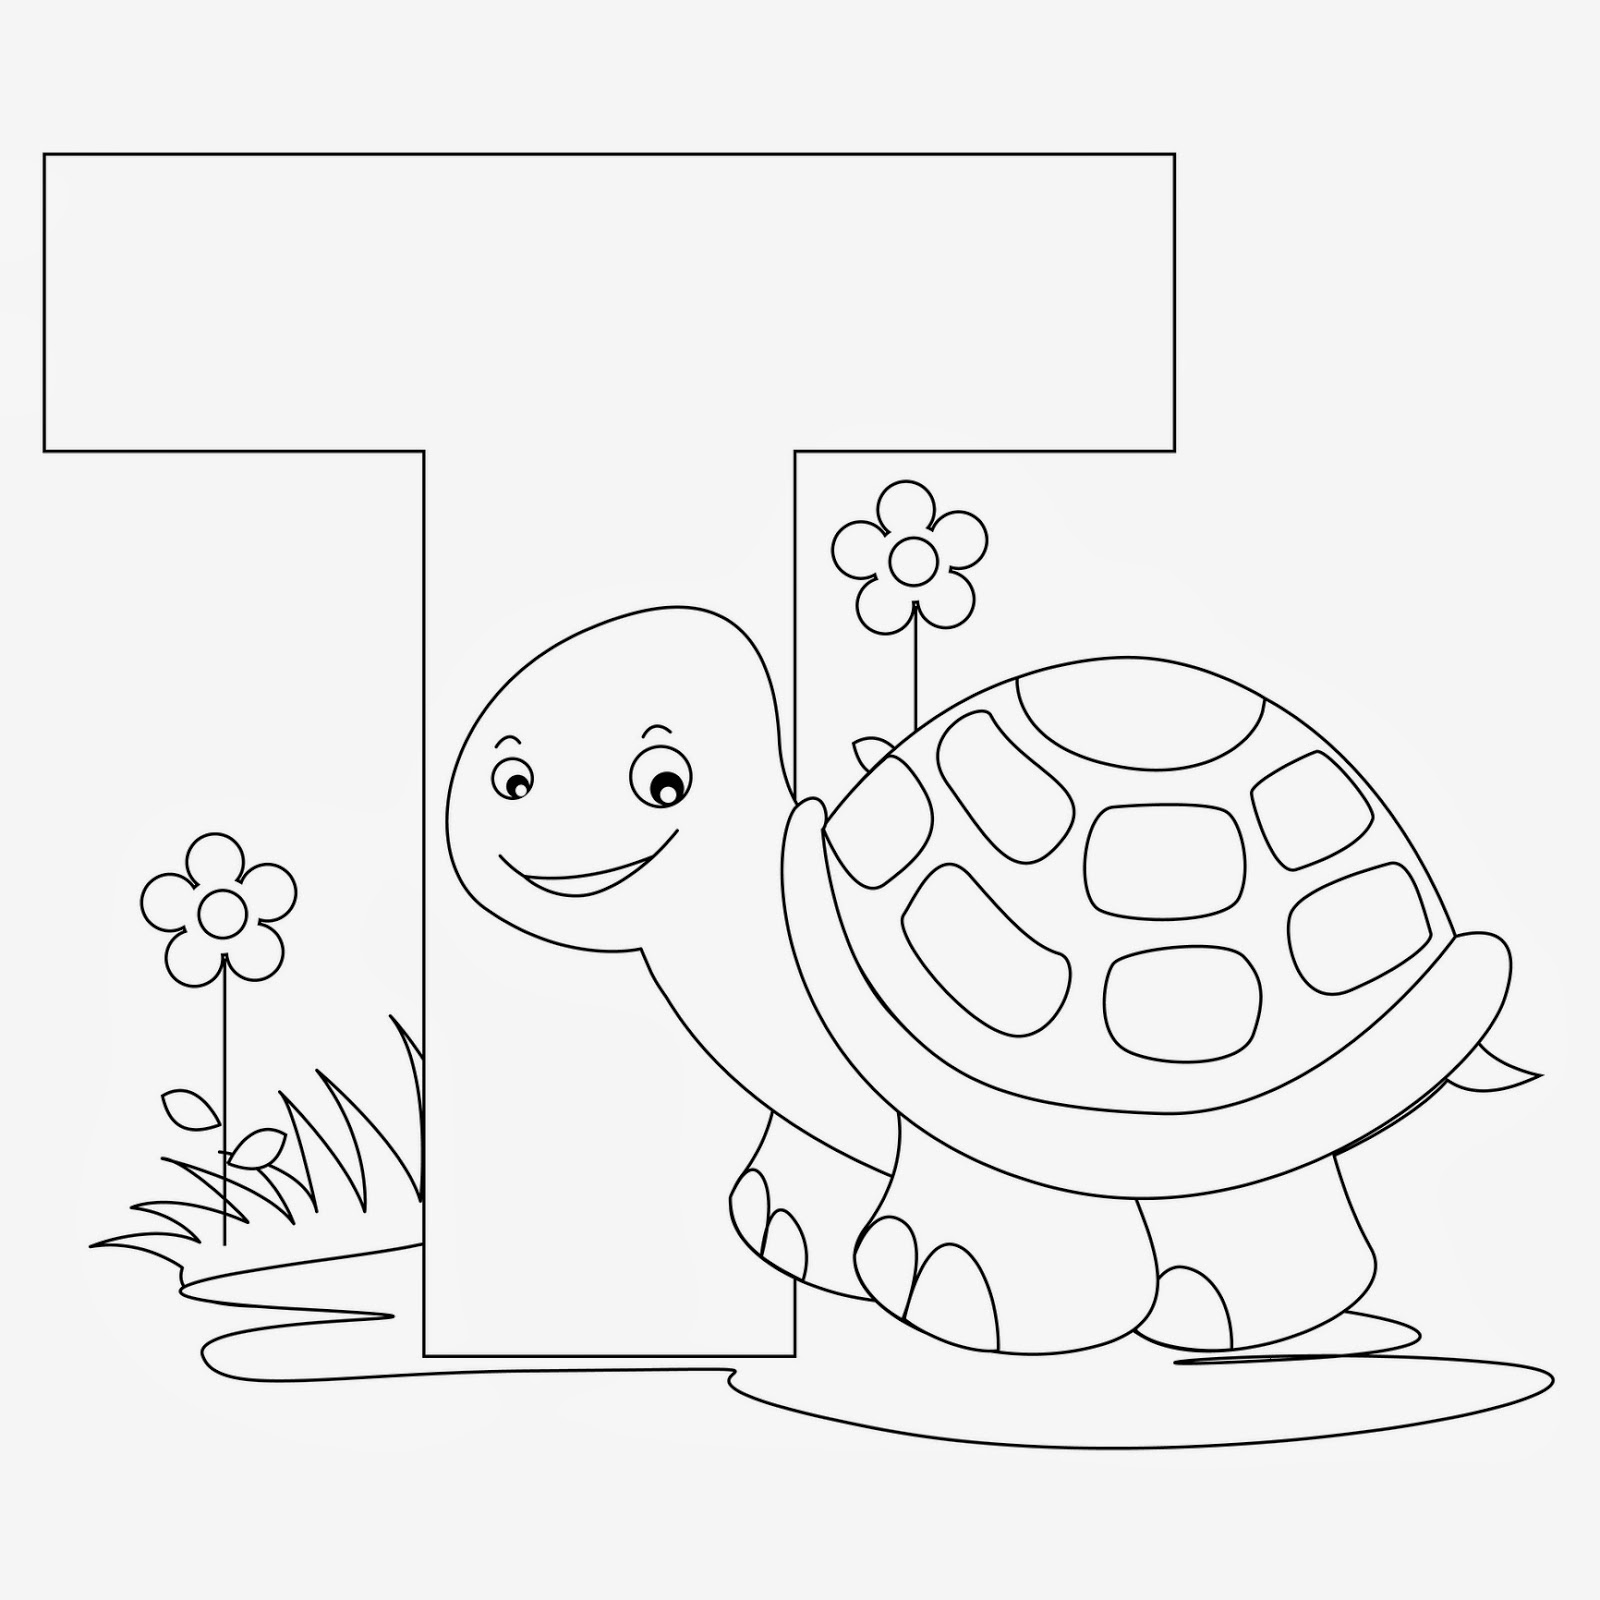 printable Alphabet Coloring Pages Turtle